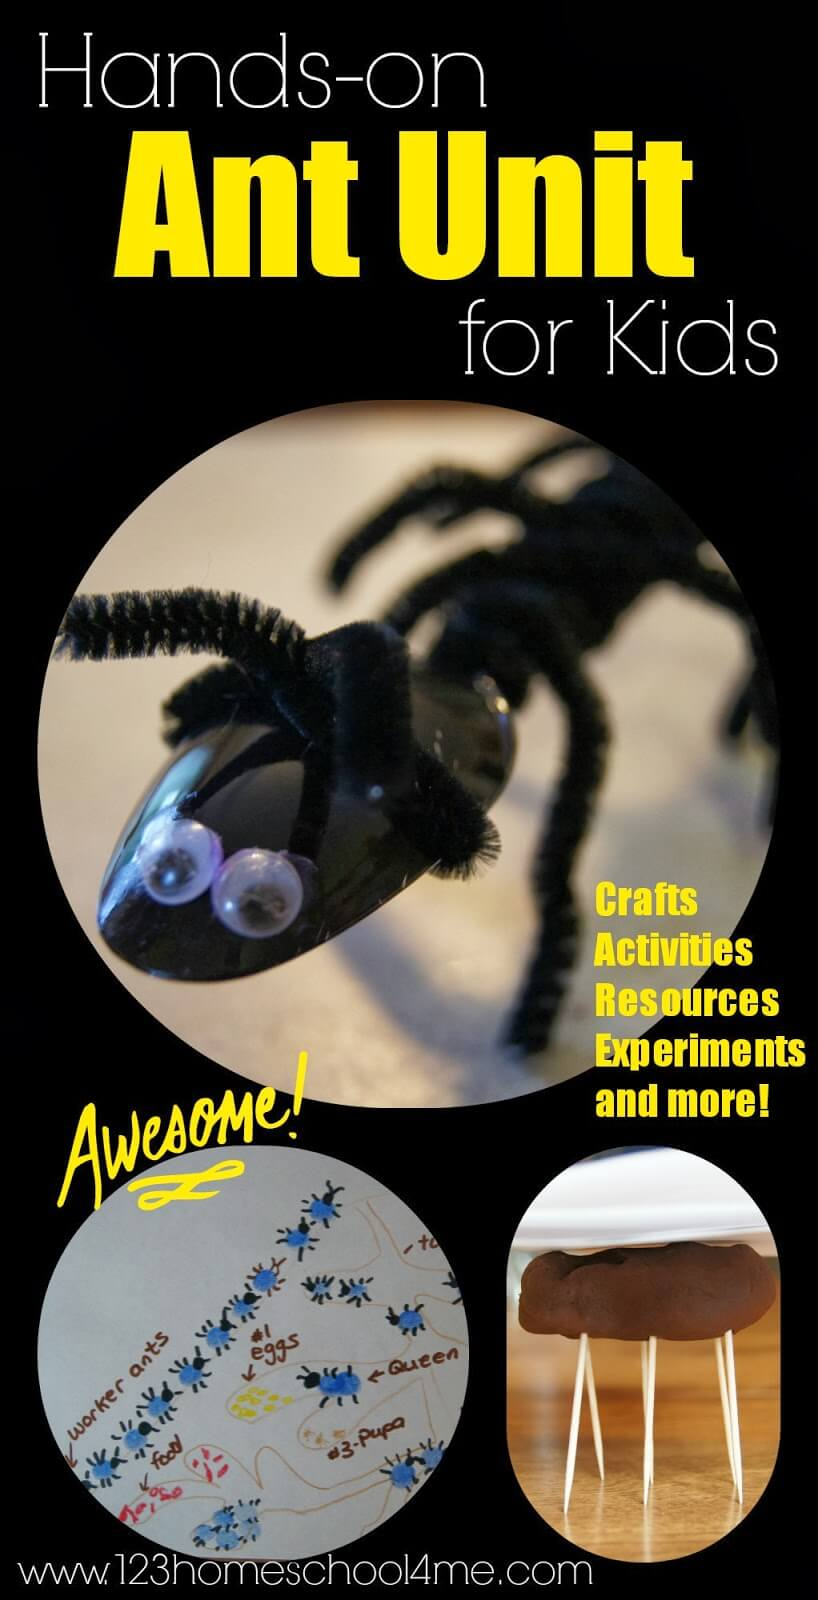 We are starting our hands on bug unit by learning about ants for kids. Make a cuteant craft that helps kids understand the importance of all the apendages or the colony inside that ant hill, plus lots of ant activities, insect printables, ant life cycle, and lots of other fun ideas! This ant lesson plant is perfect for toddler, preschool, pre-k, kindergarten, first grade, and 2nd graders too.